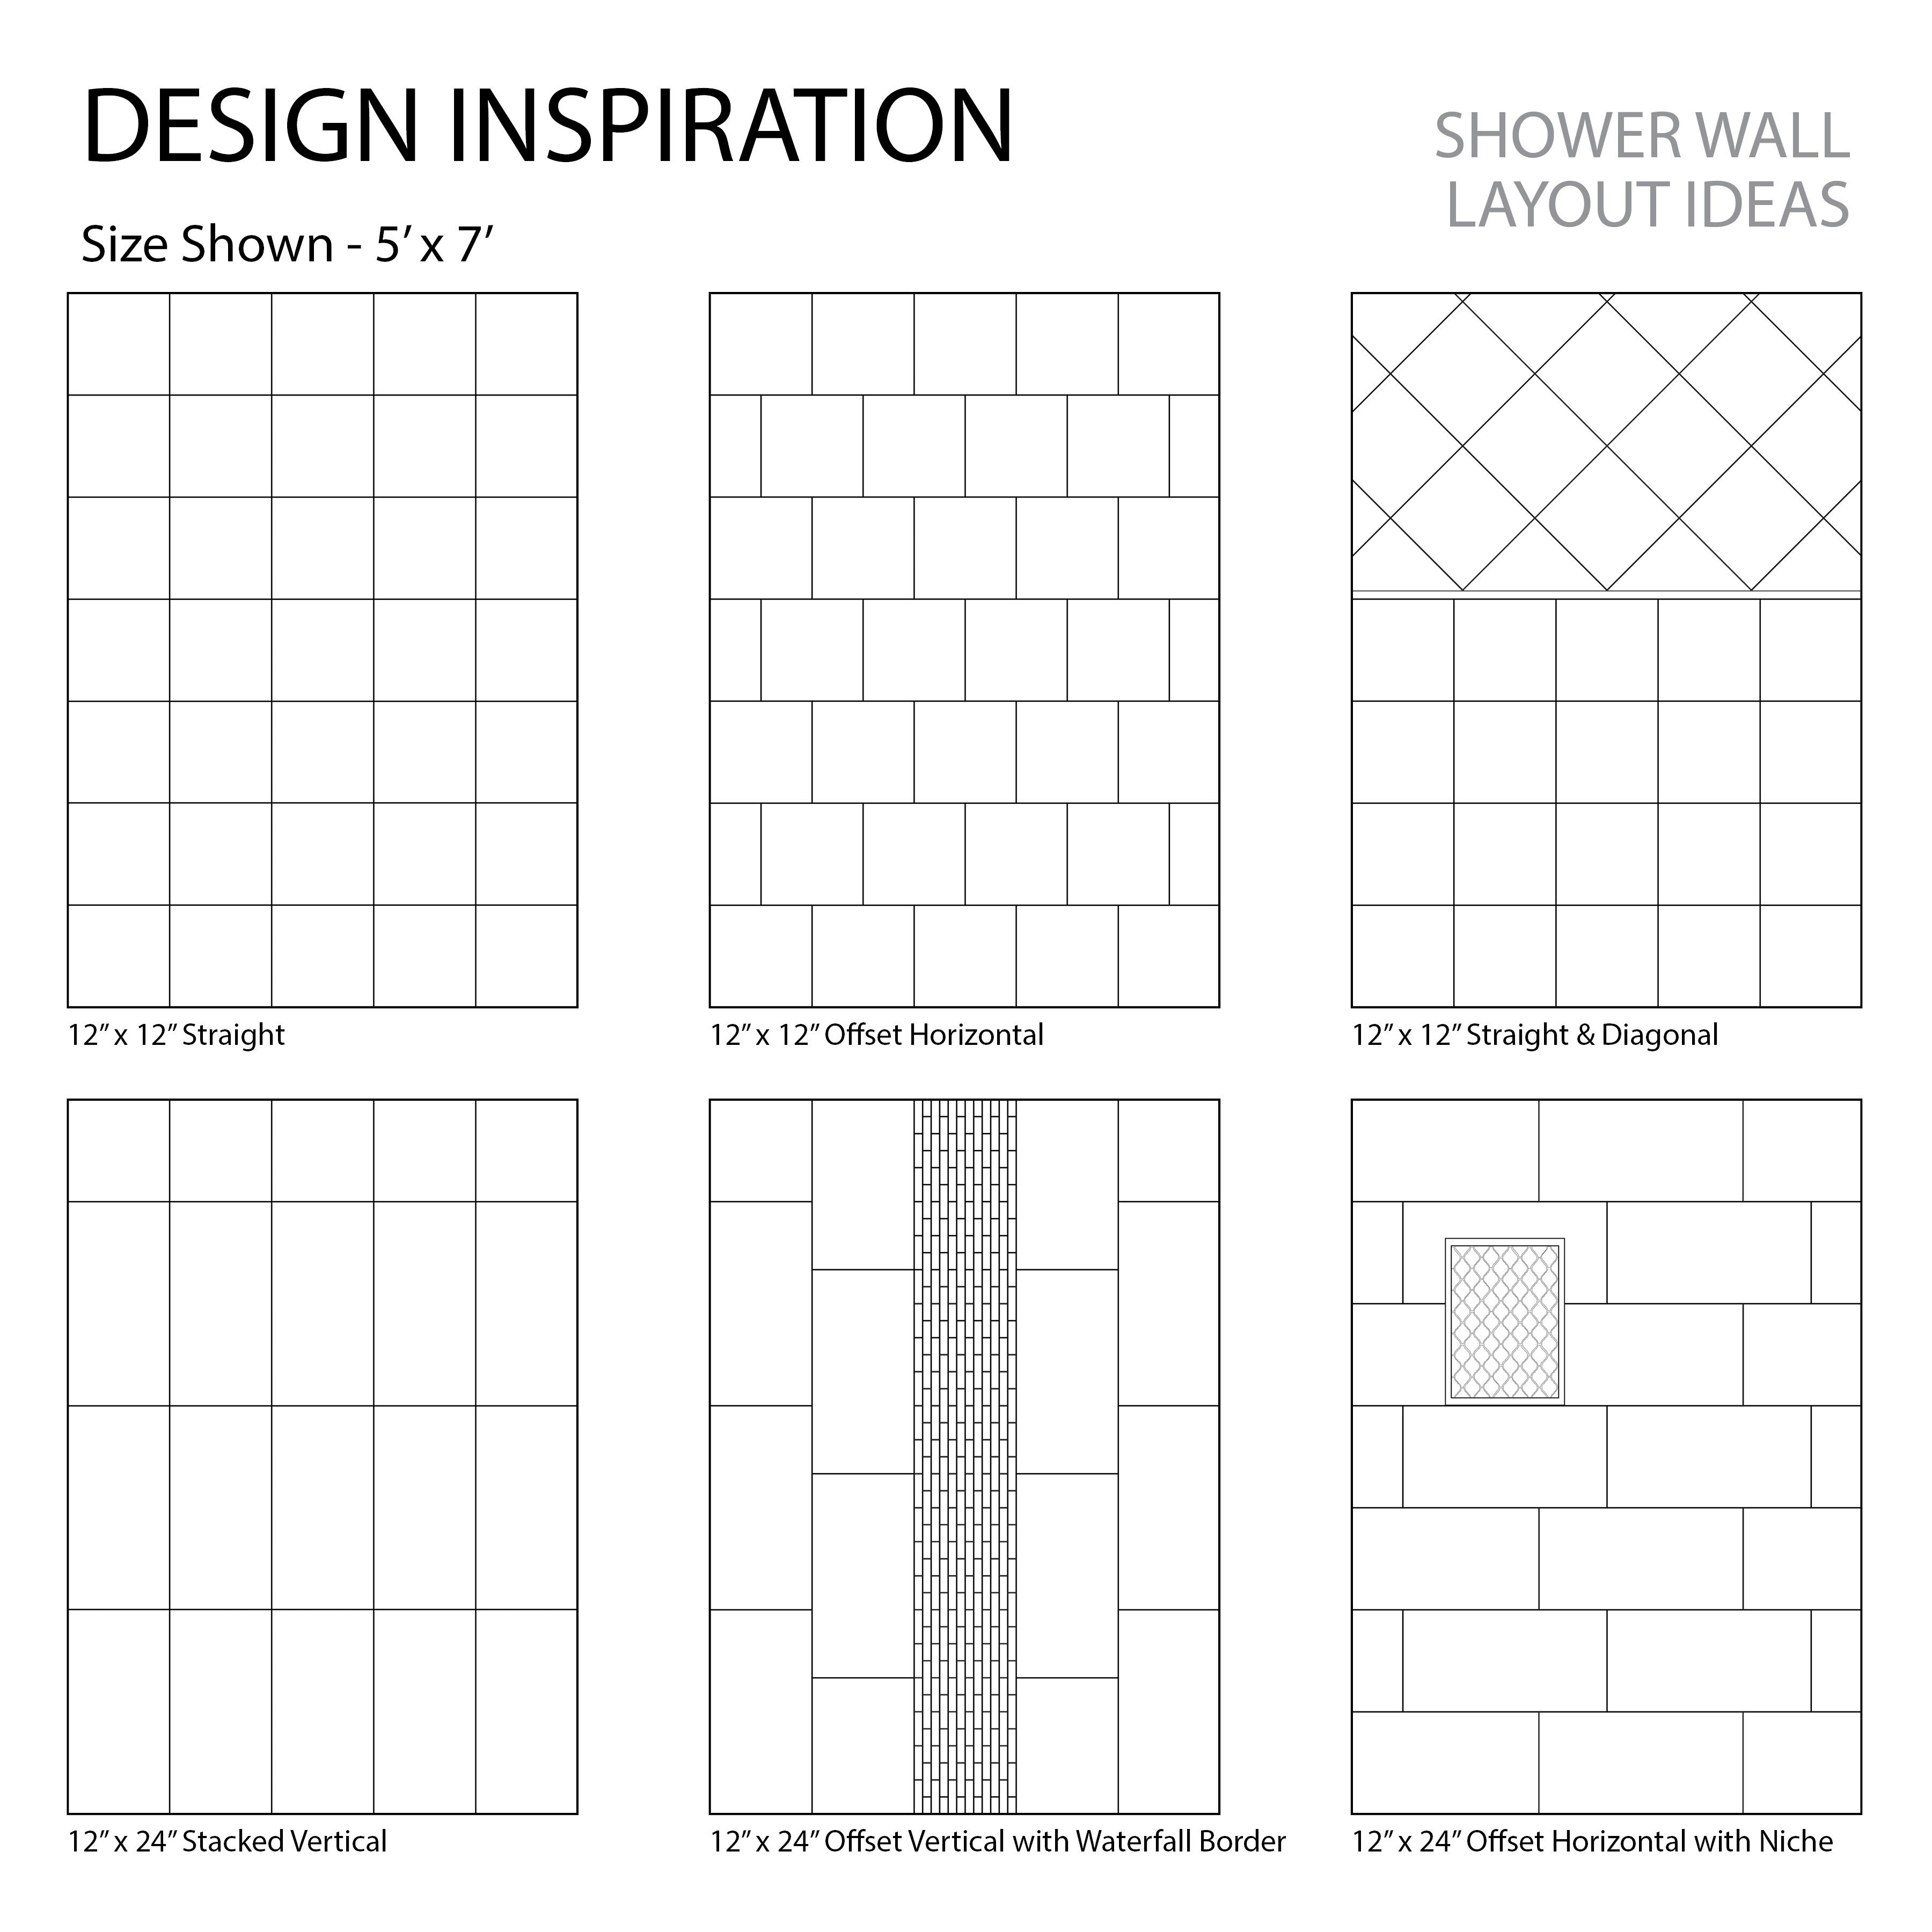 12 X 12 12 X 24 Shower Layout Inspiration Tile Layout Shower Tile Designs Shower Tile Patterns